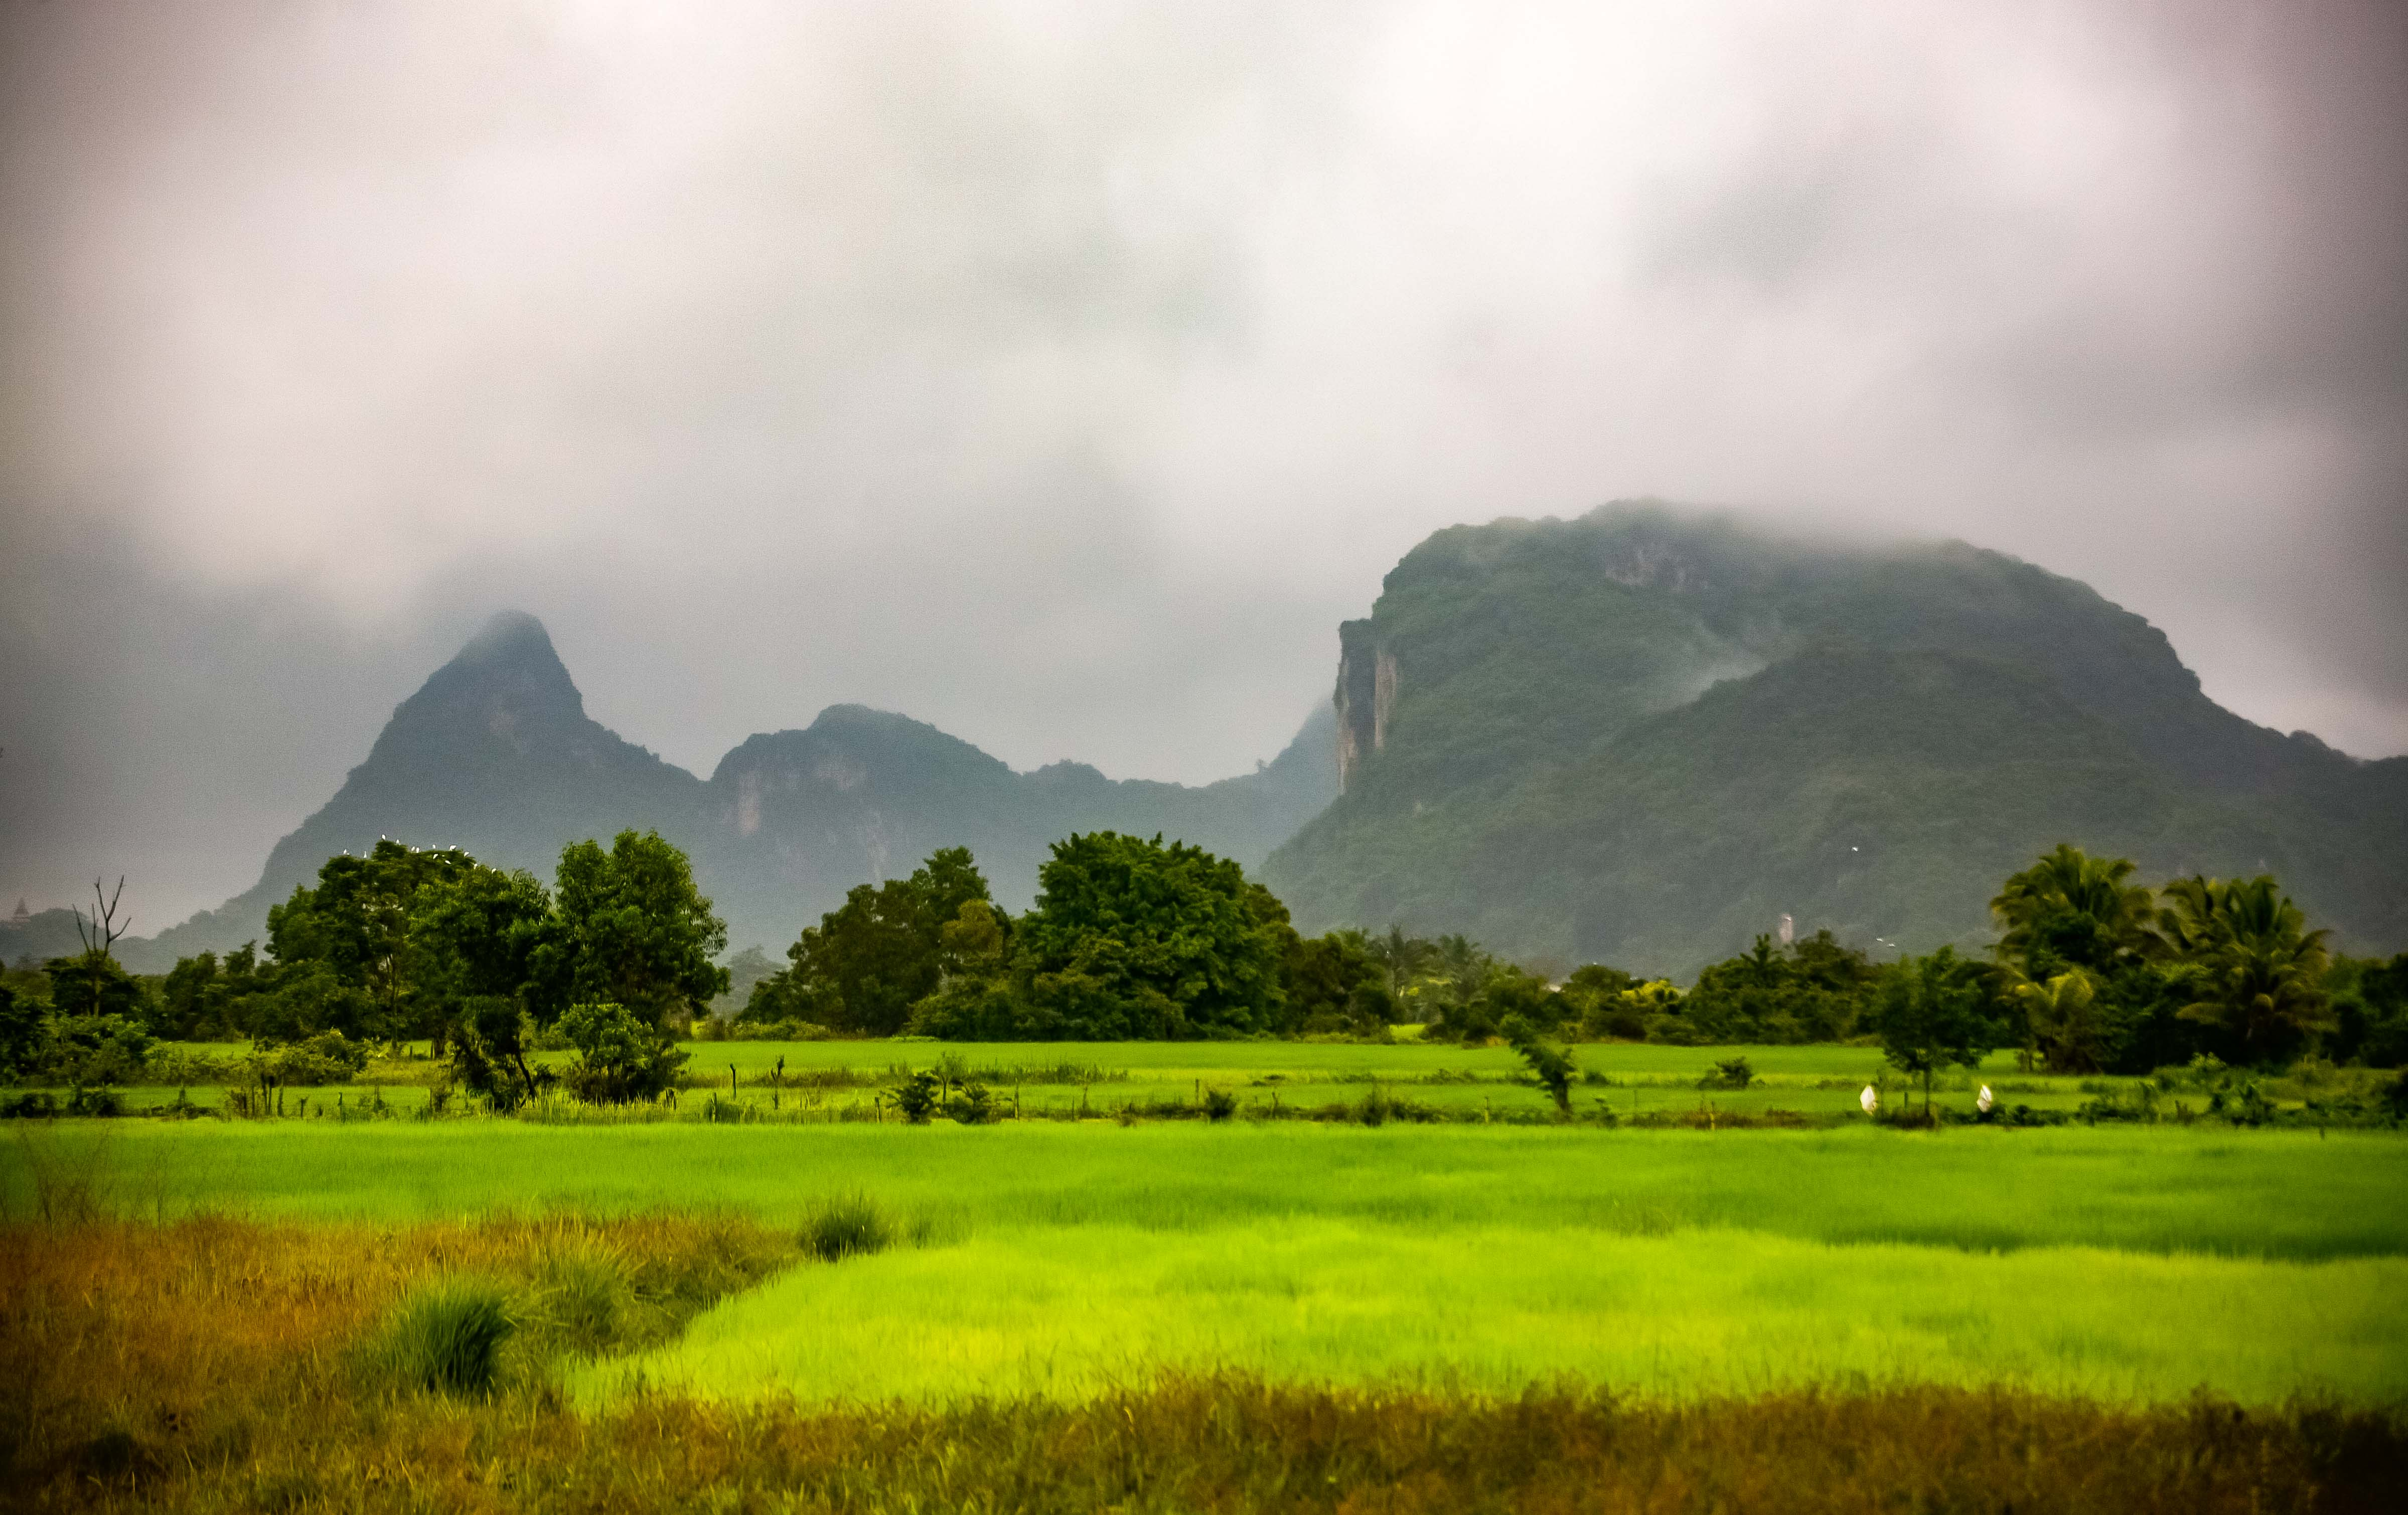 Thailand, Phatthalung Prov, Cloudy Landscape, 2008, IMG 1558